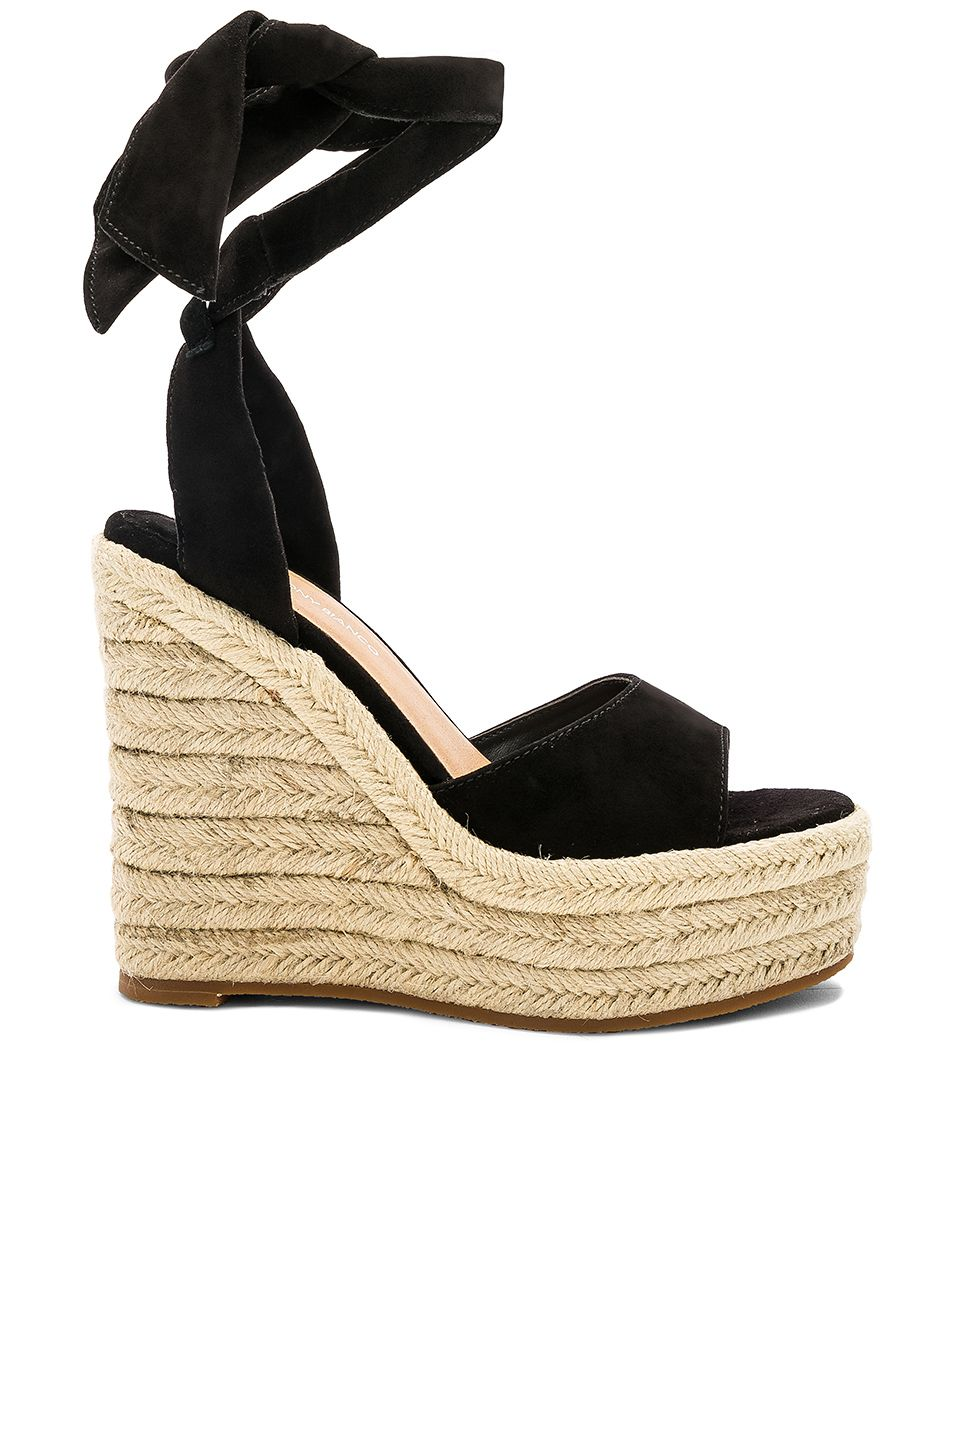 67a930831f3 Tony Bianco Barca Wedge in Black Kid Suede